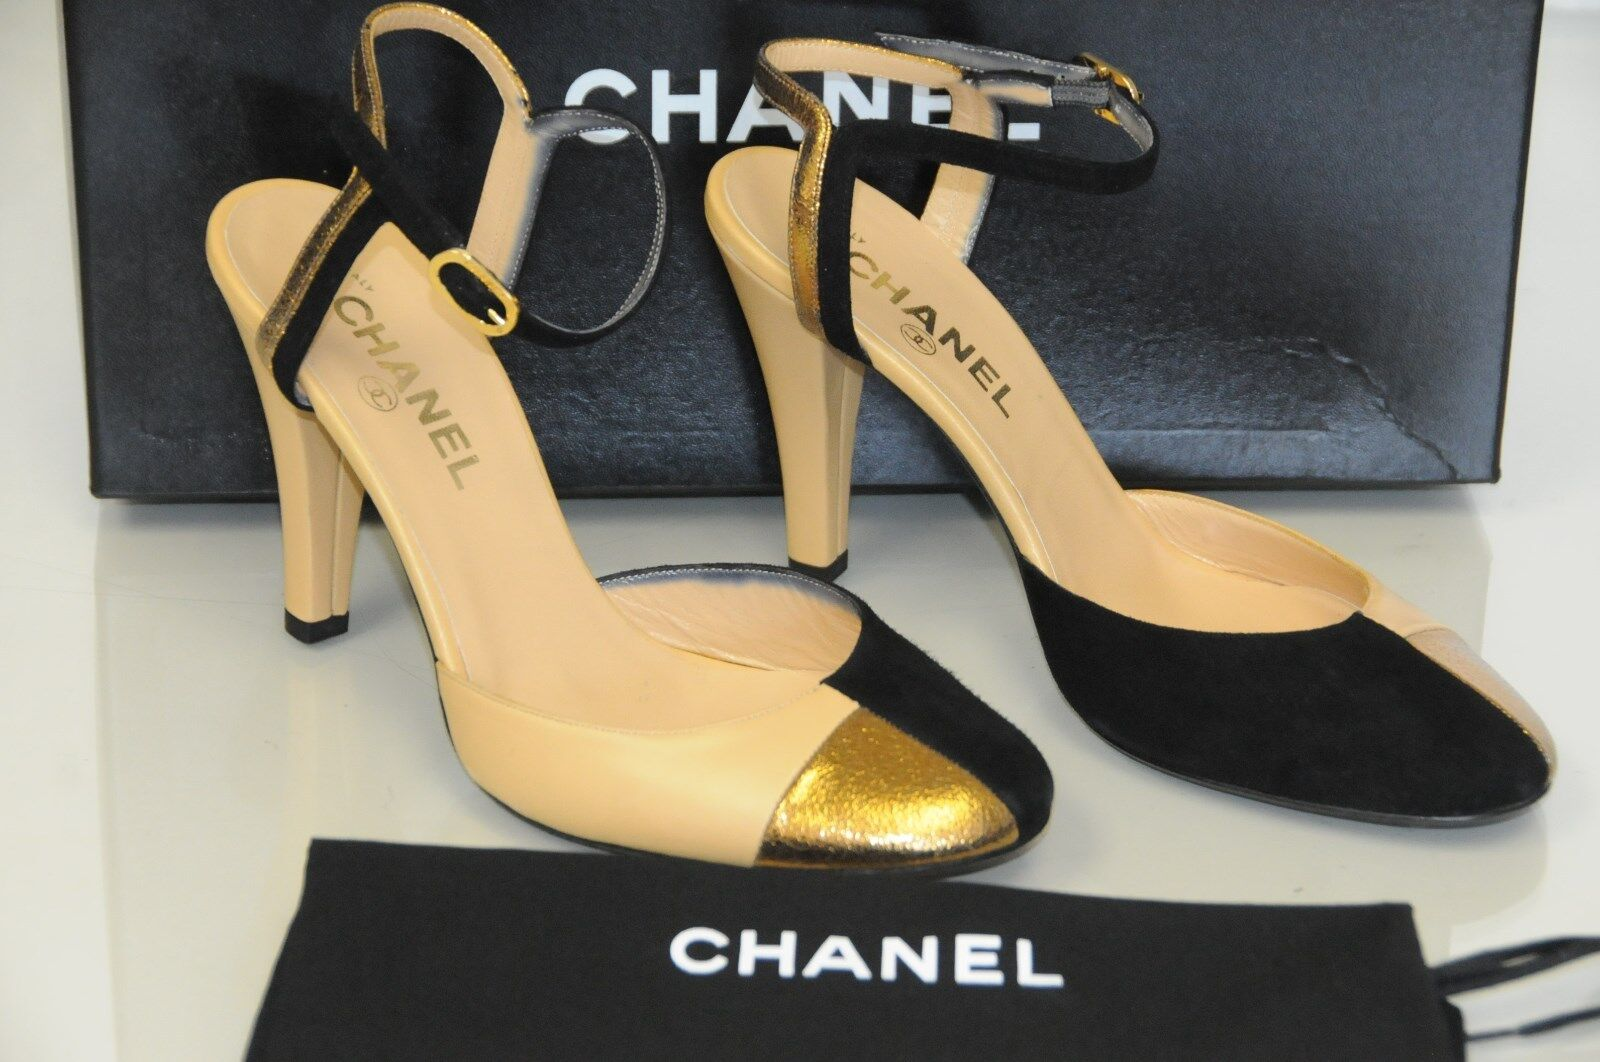 995 New Chanel Beige Black Gold Leather Suede Ankle Strap CC Logo Shoes 38